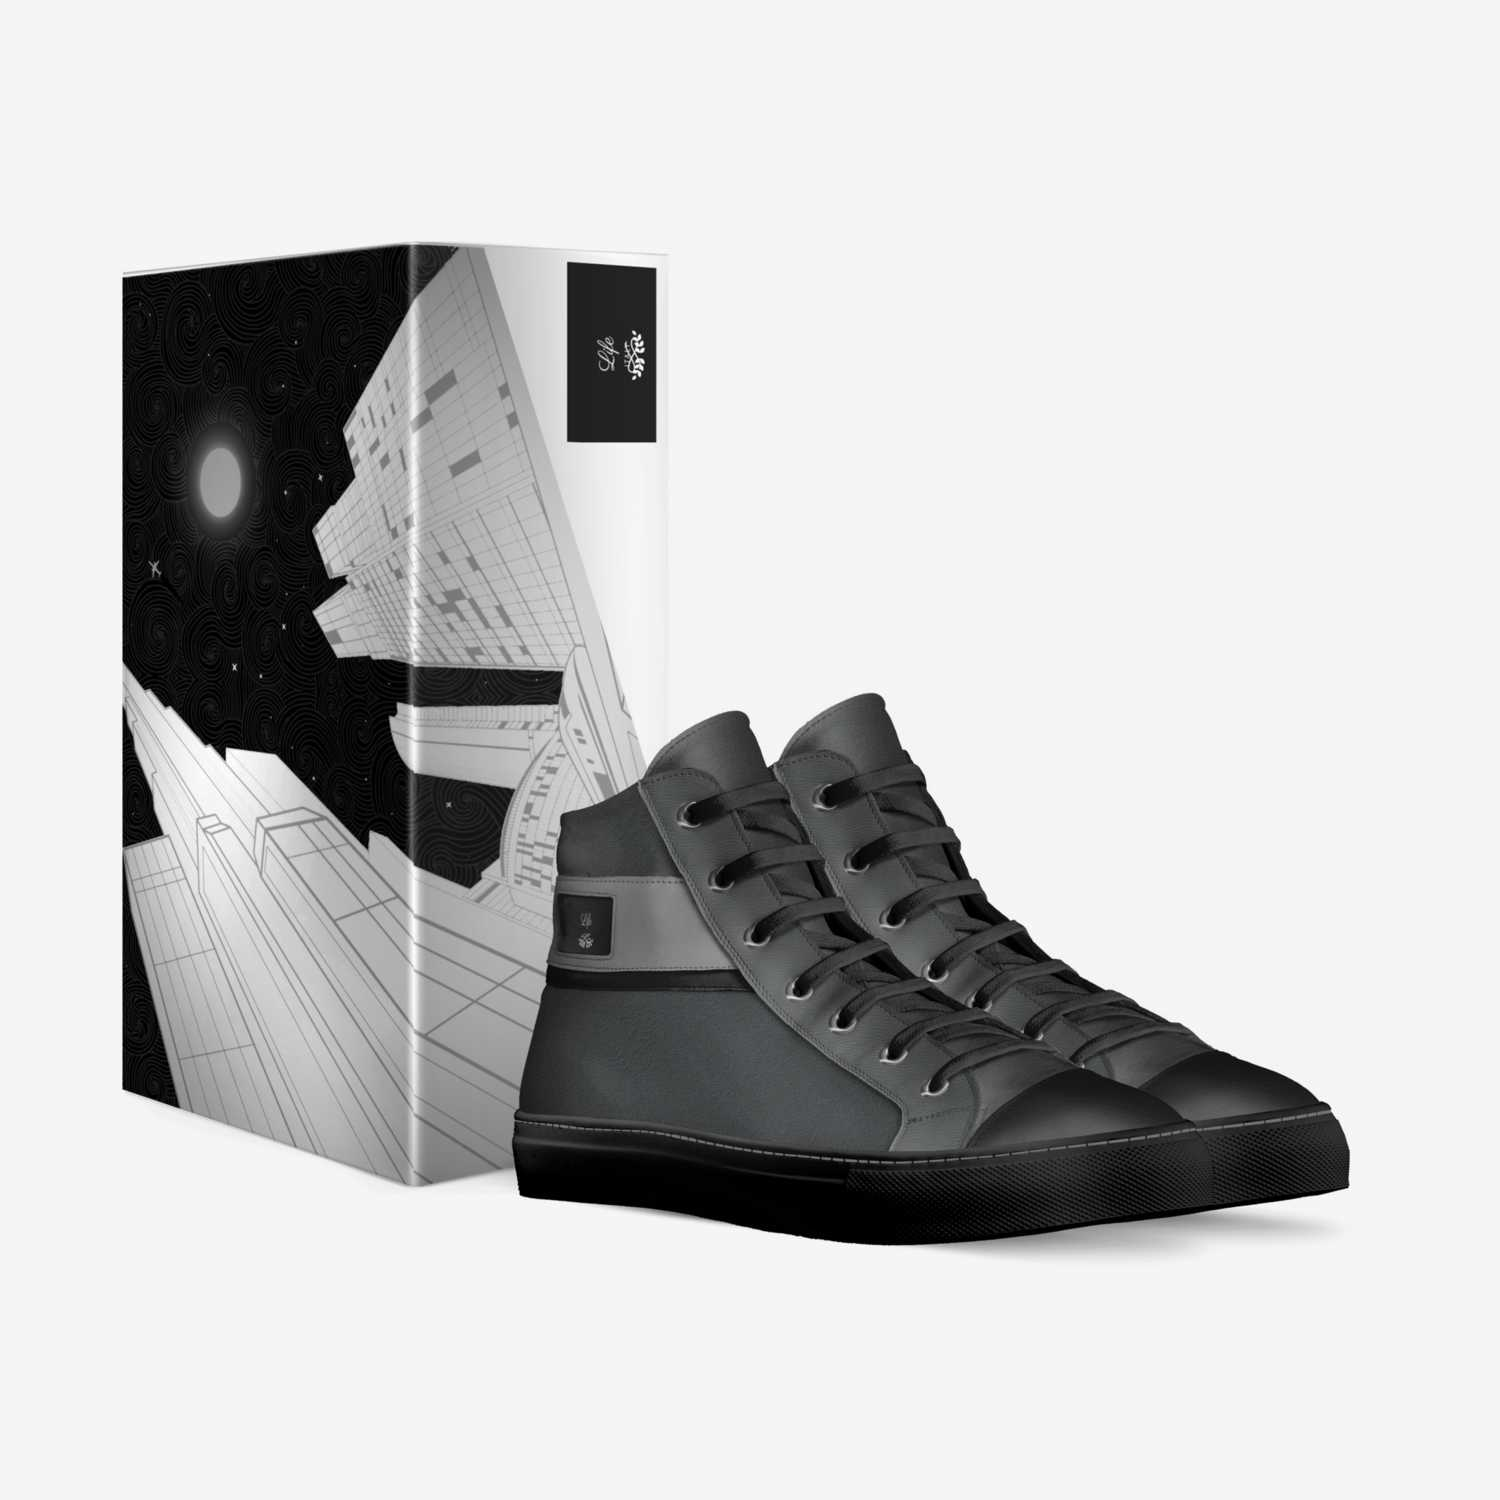 Junior custom made in Italy shoes by Rayfield Coles | Box view